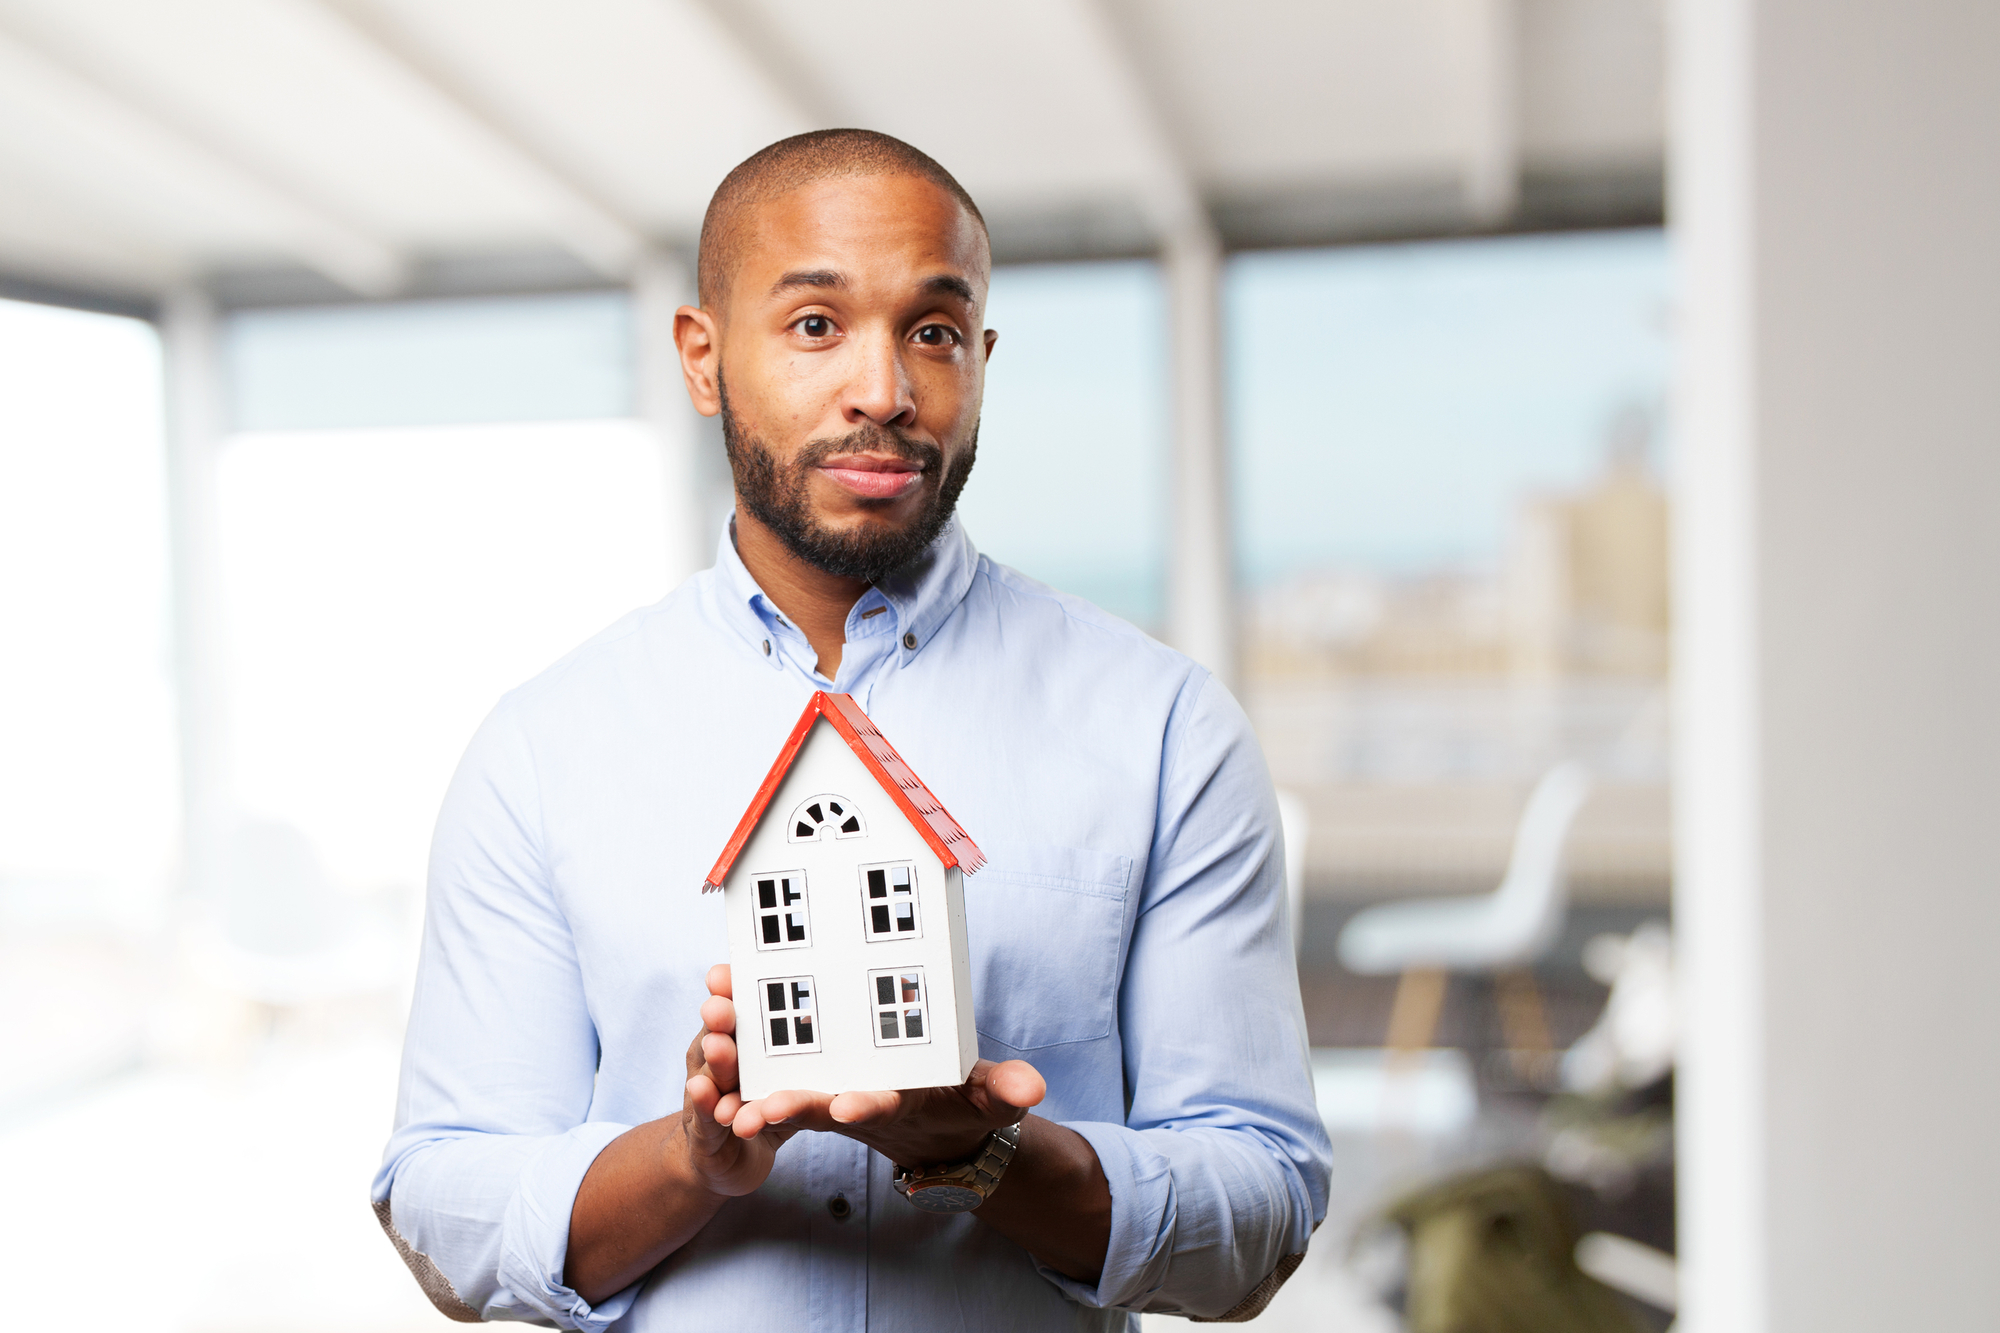 Black businessman with toy house